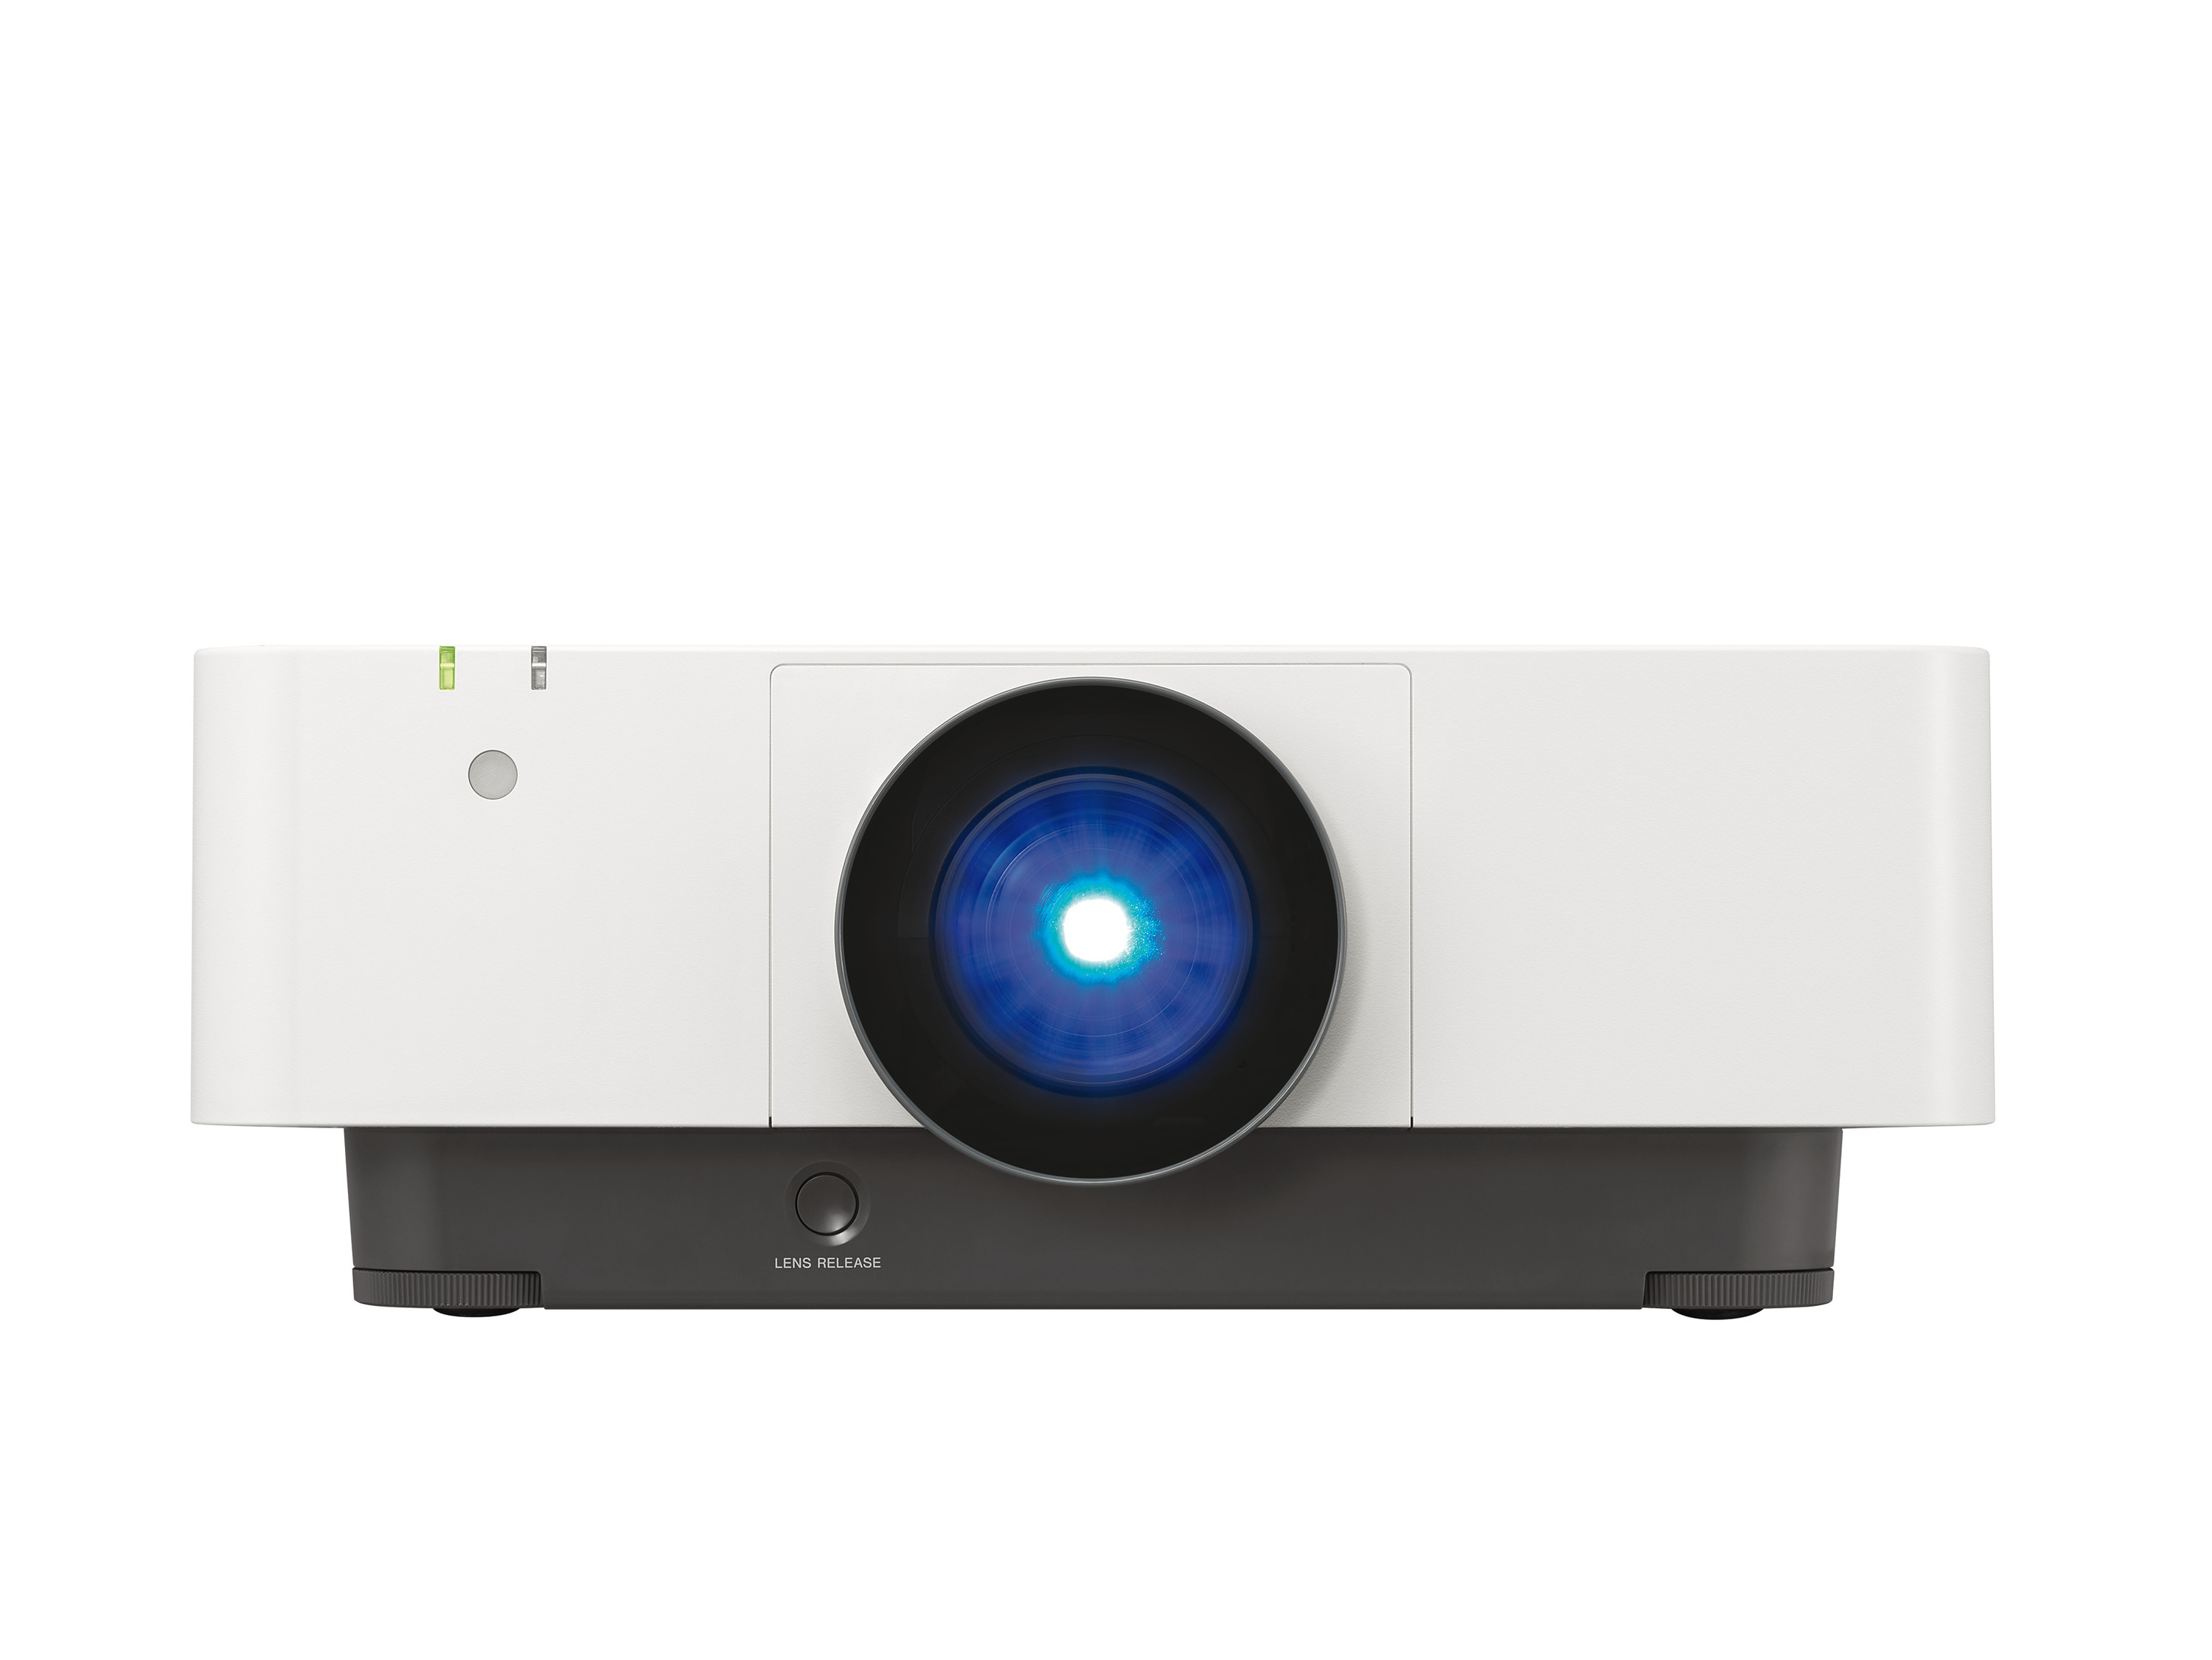 Sony Electronics Enhances Projector Offerings with Two Mid-Range 3LCD Laser Models